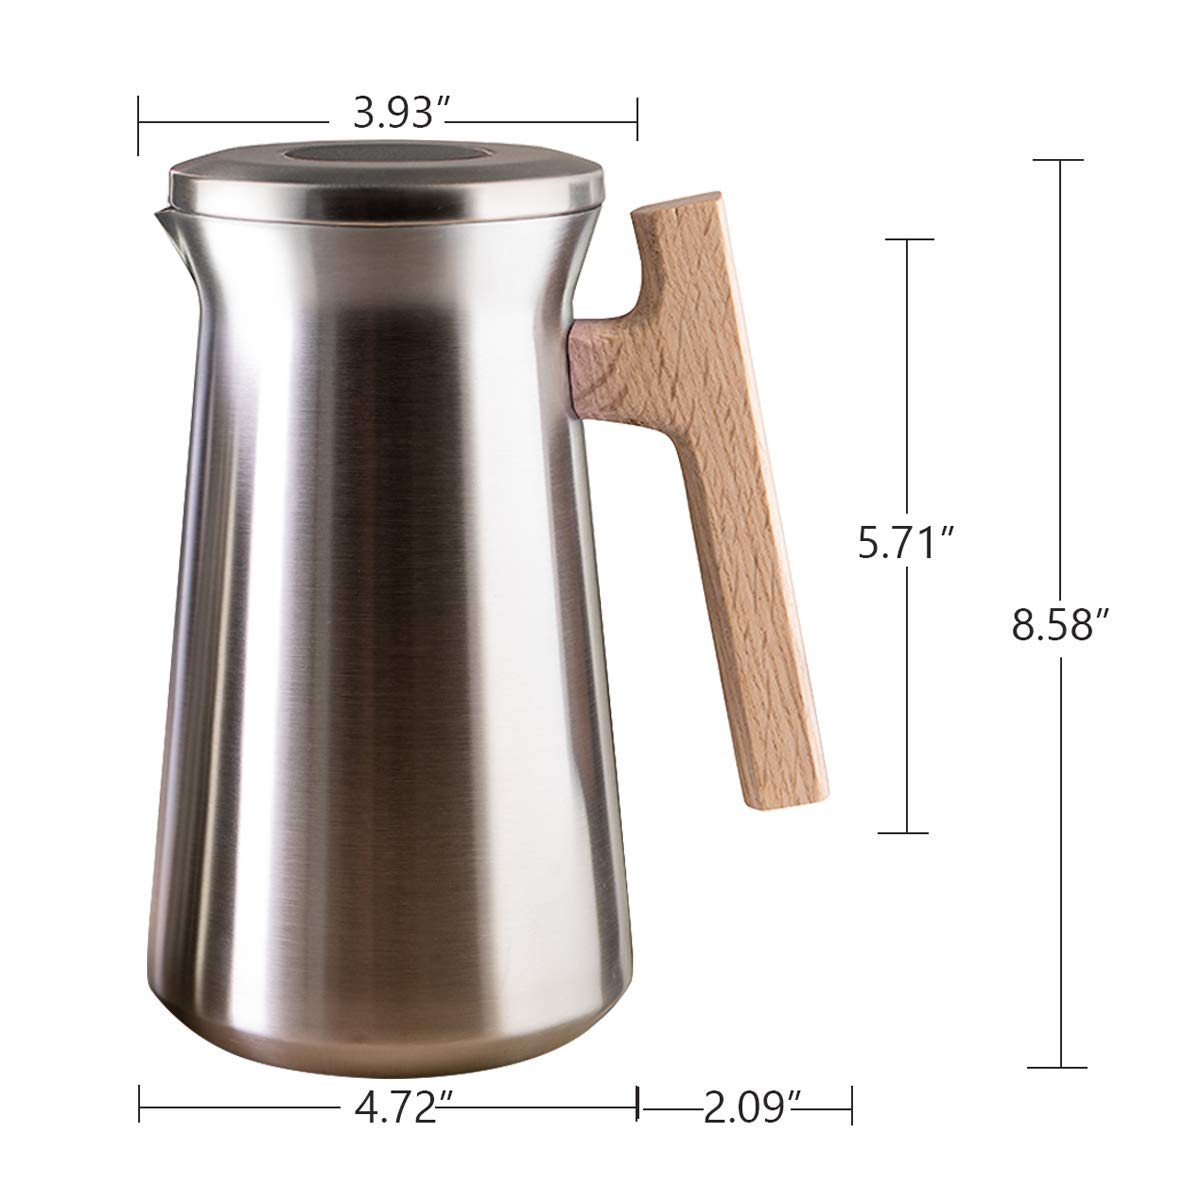 SDREAM Coffee Carafe Thermal For Kettle Stainless Steel 34 Oz Double Walled Vacuum Insulation Hot Beverage or Tea, Sliver, 34 oz by SDREAM (Image #6)